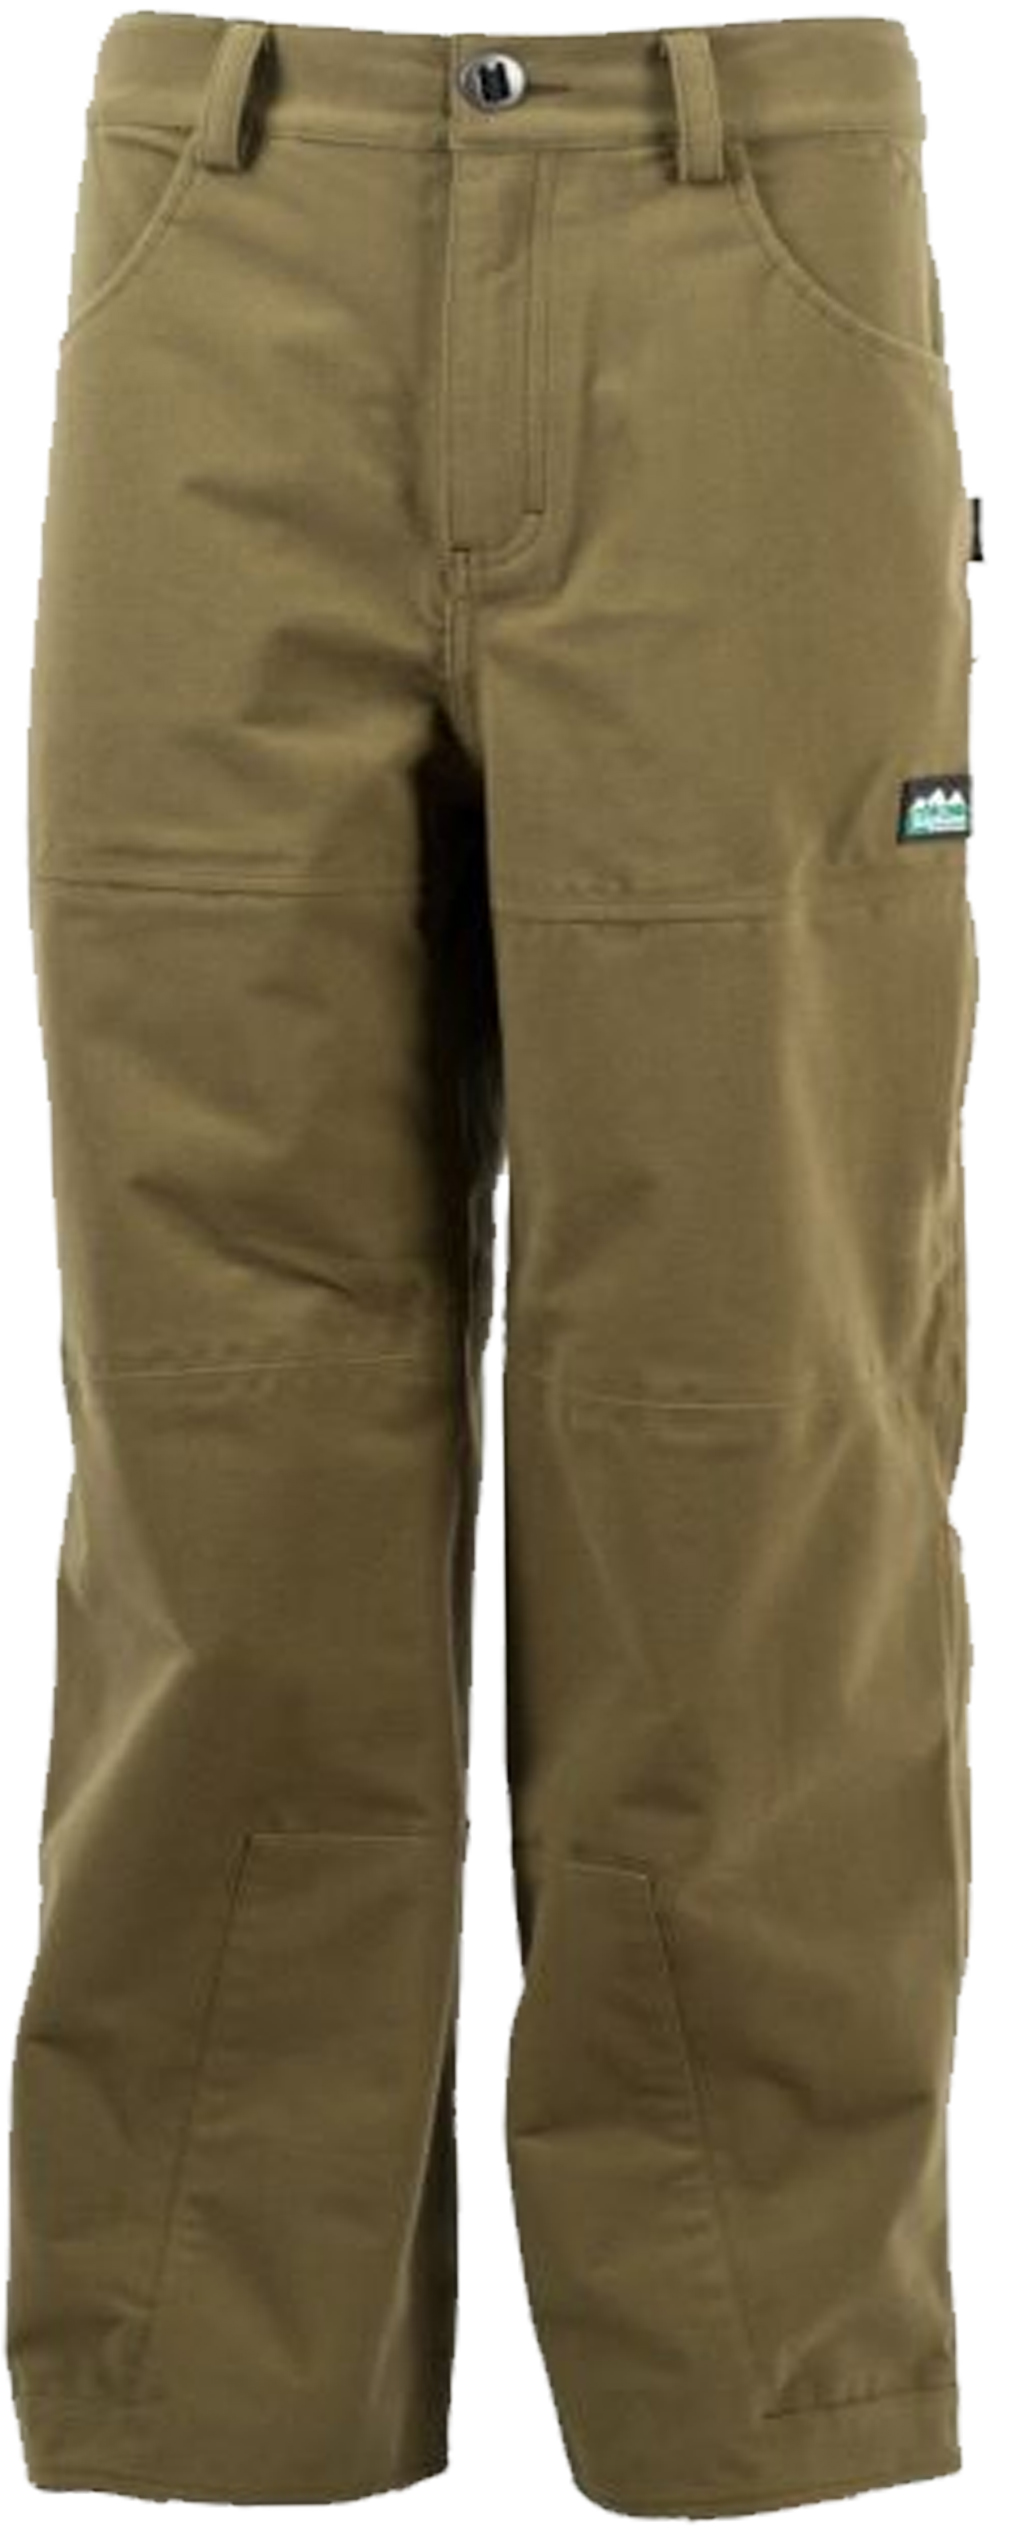 Ridgeline Monsoon Classic Trousers Teak